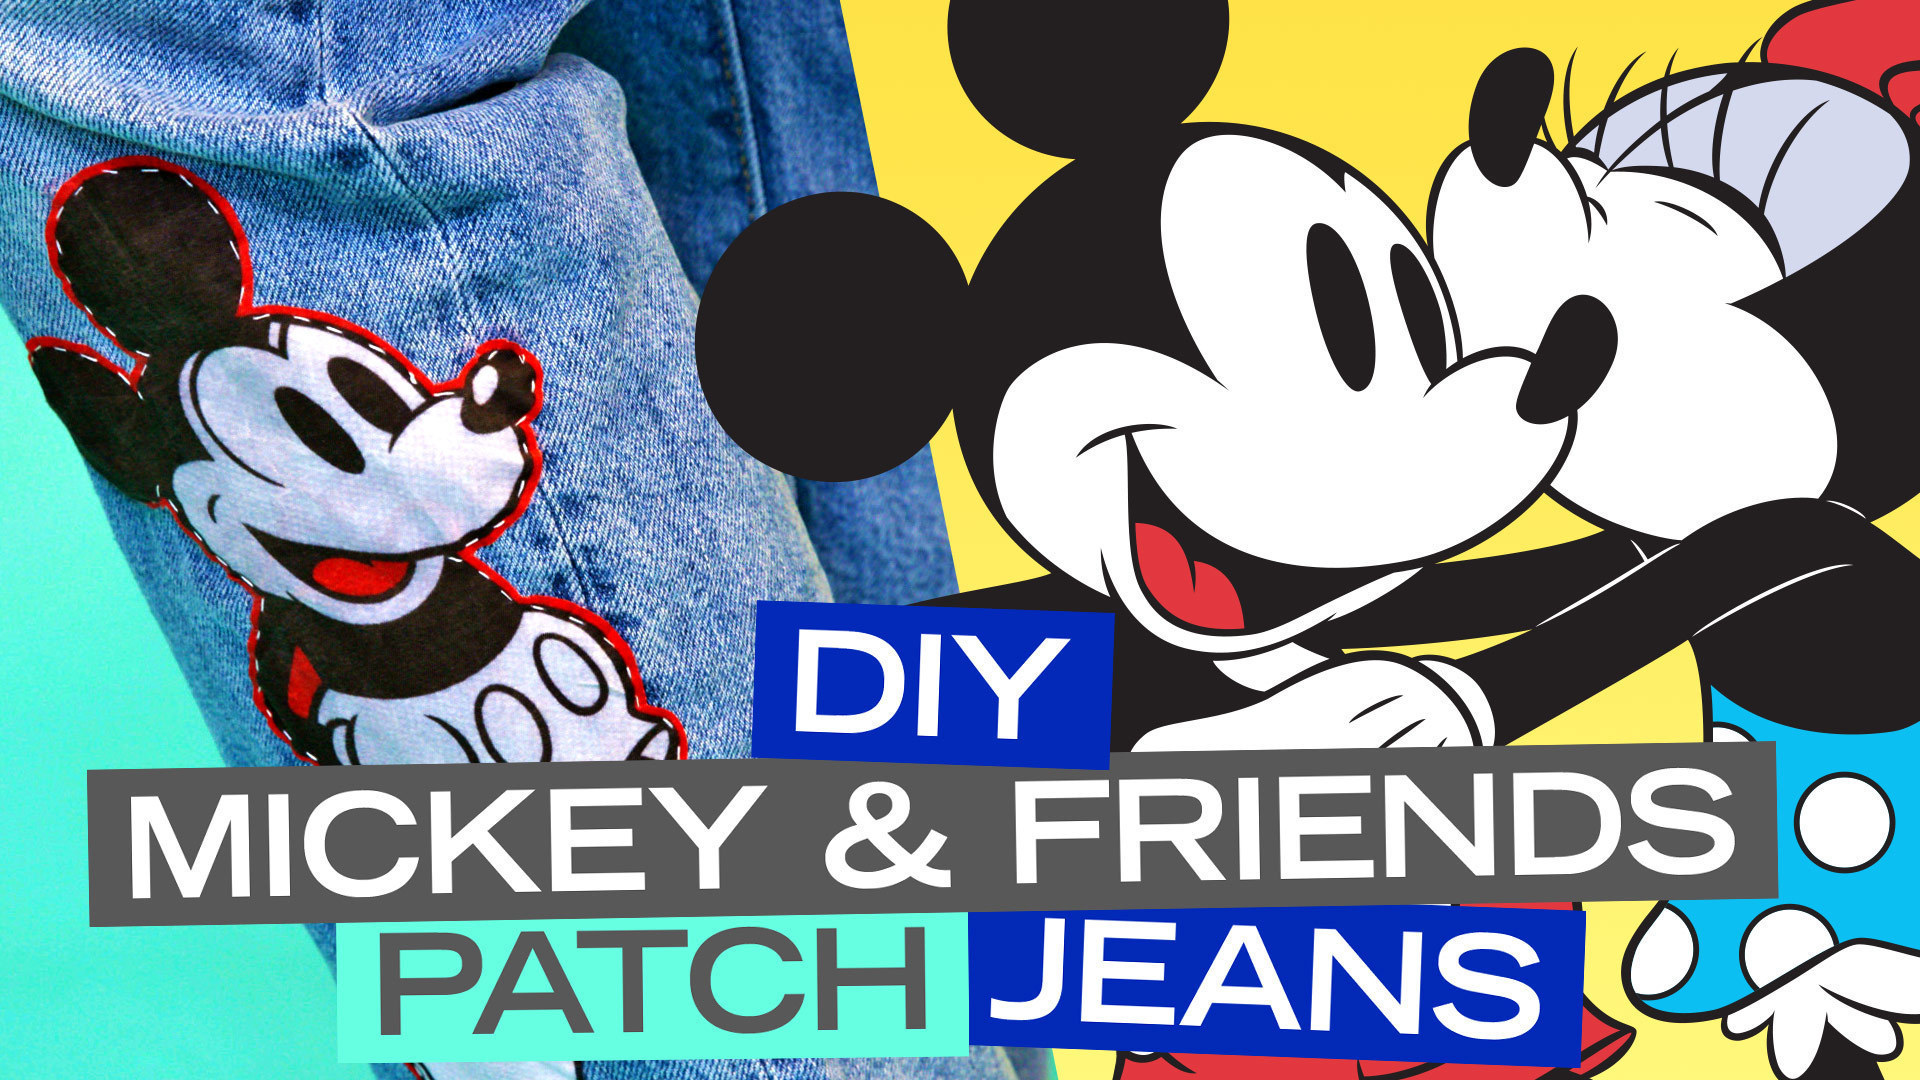 DIY Mickey & Friends Patch Jeans | Disney Style